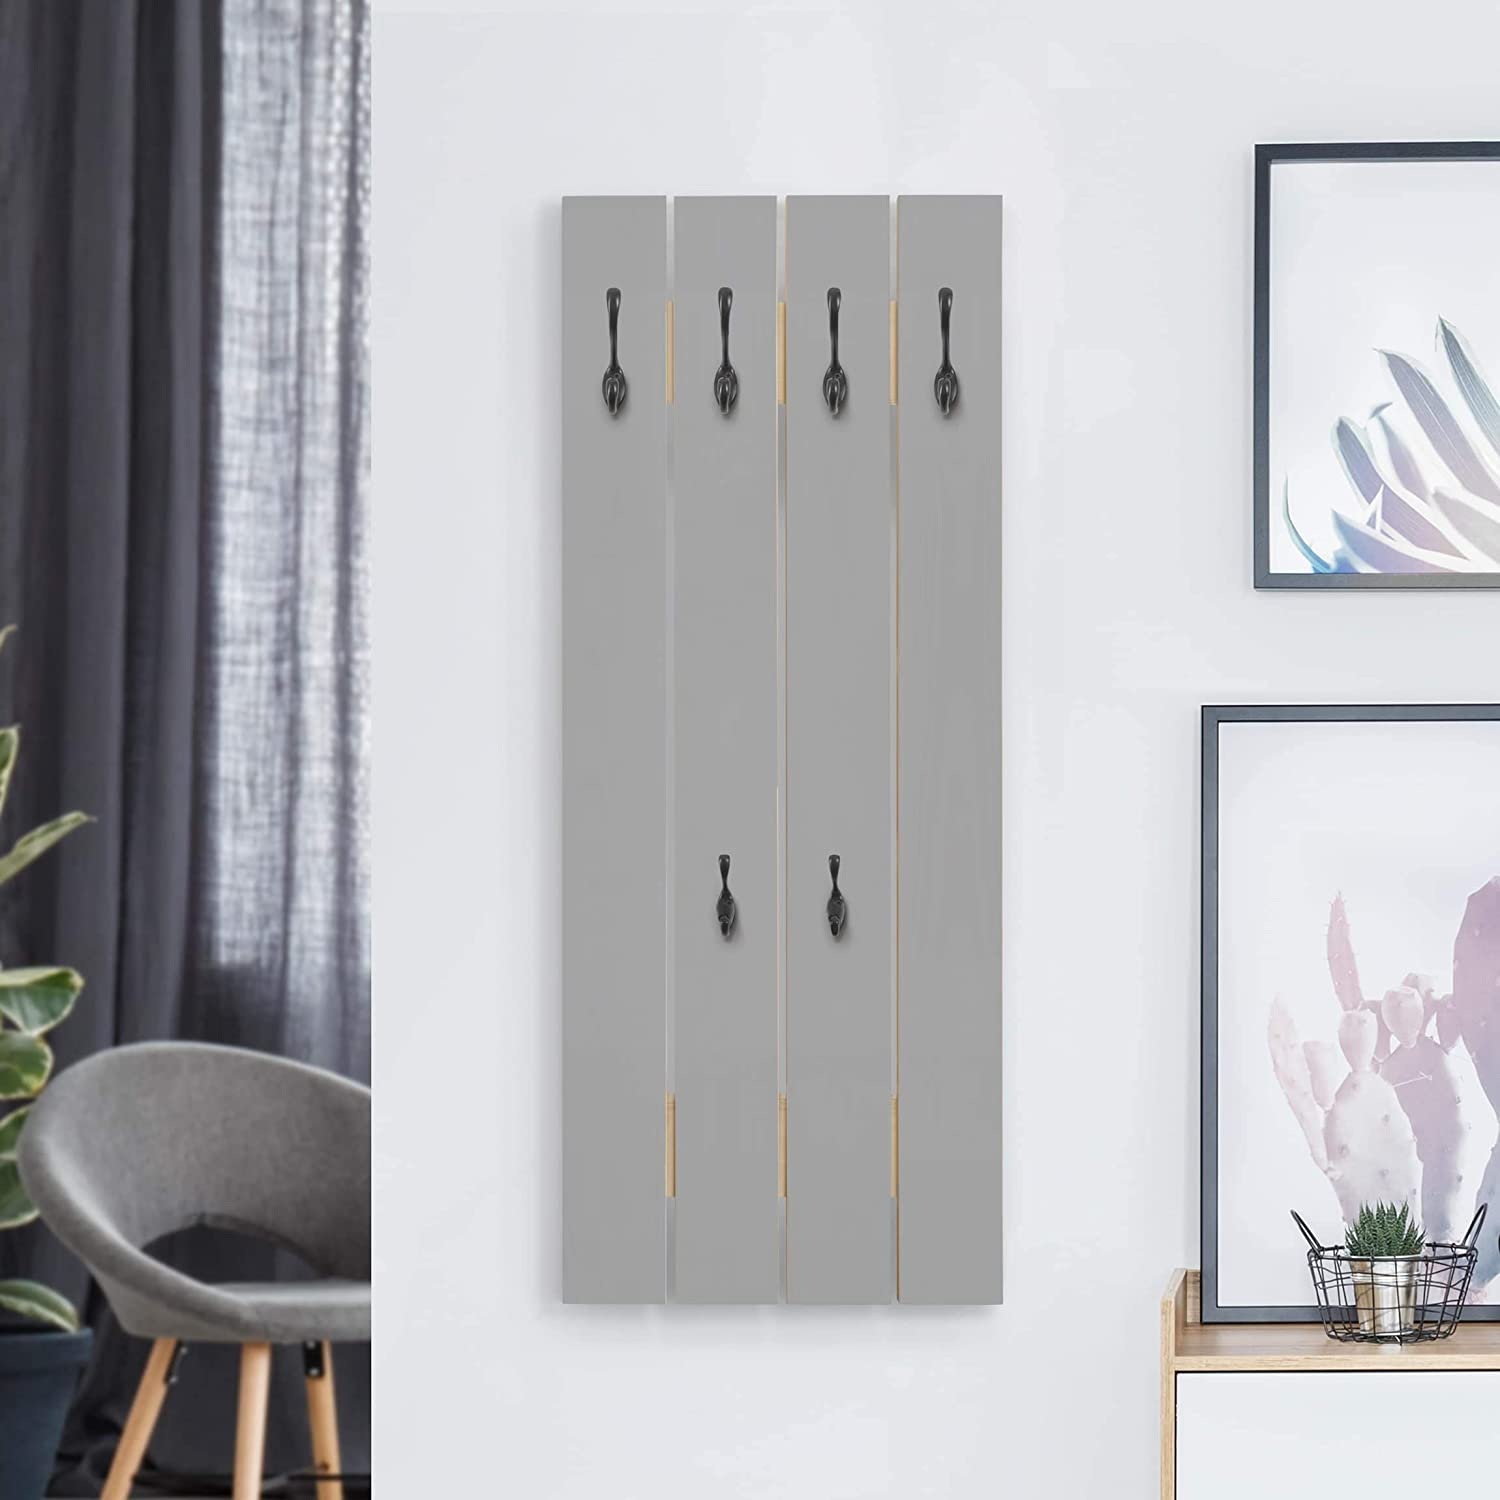 Bilderwelten Perchero de Madera Color Cool Gris - Ganchos Negros 100x40 cm: Amazon.es: Hogar